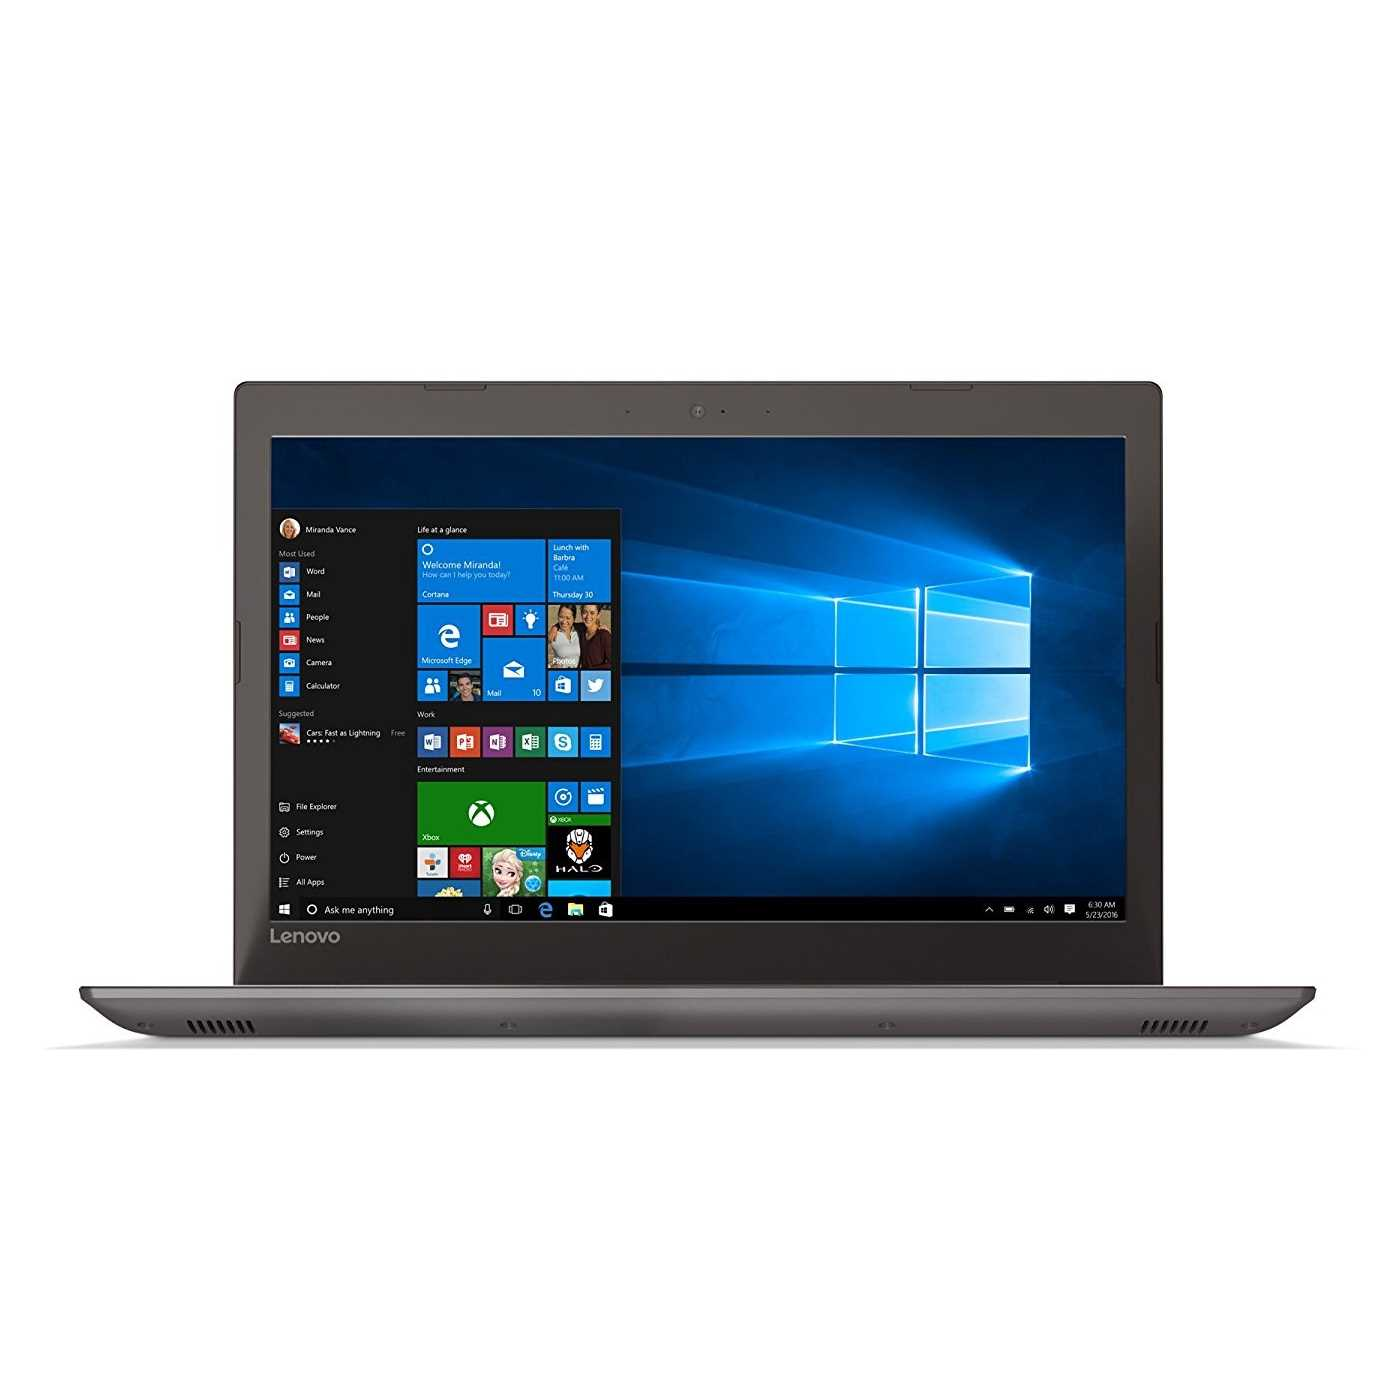 Lenovo IdeaPad 520 (80YL00R8IN) Laptop